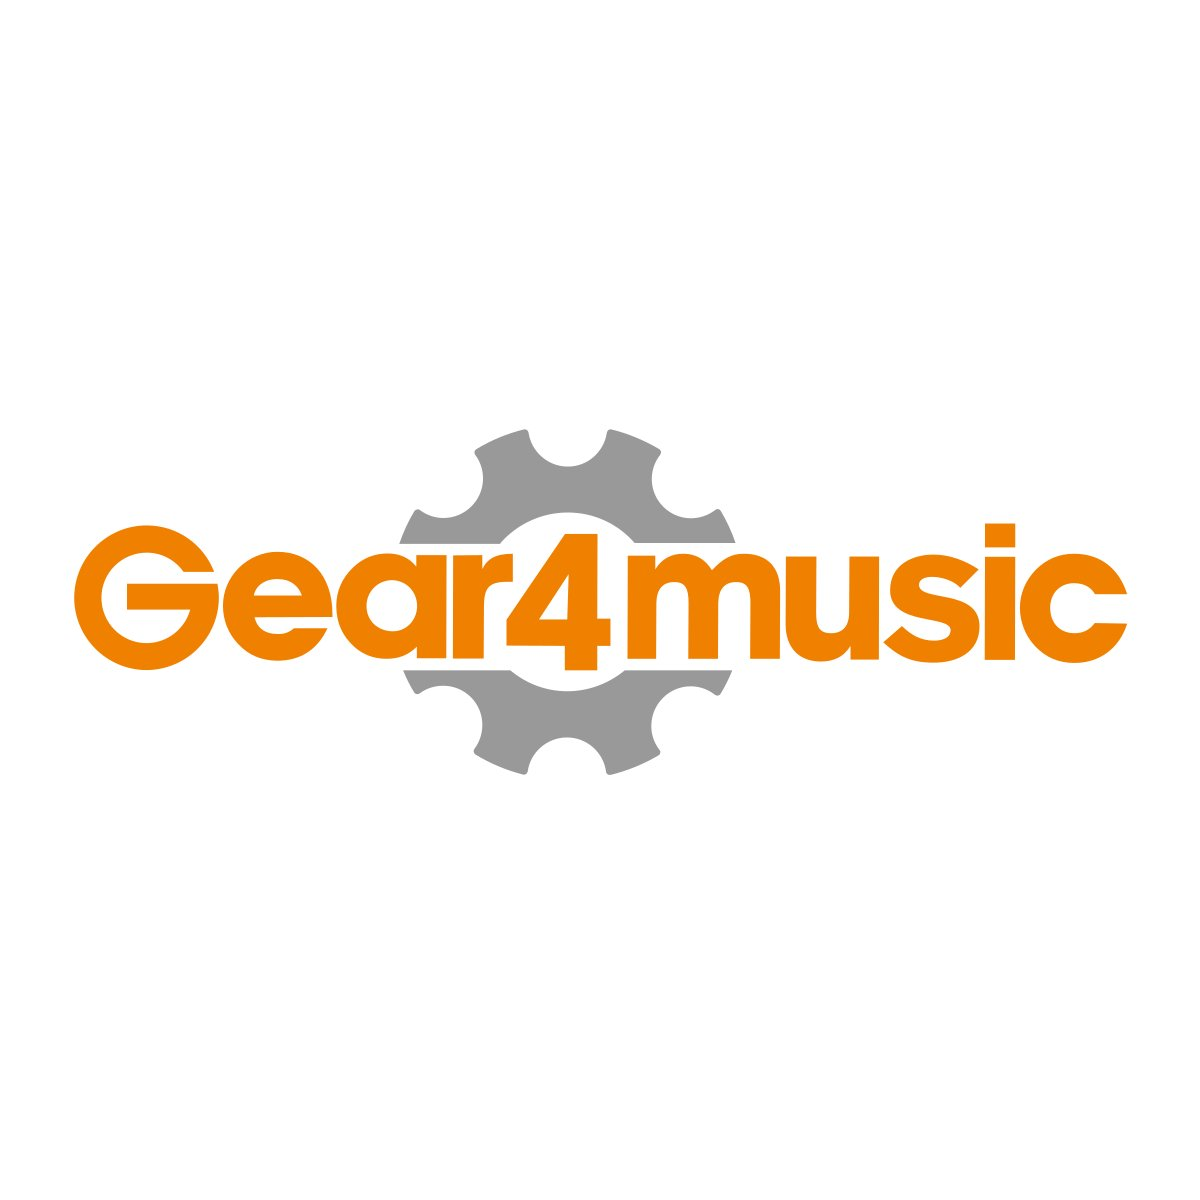 D-förmiges Tamburin von Gear4music Green